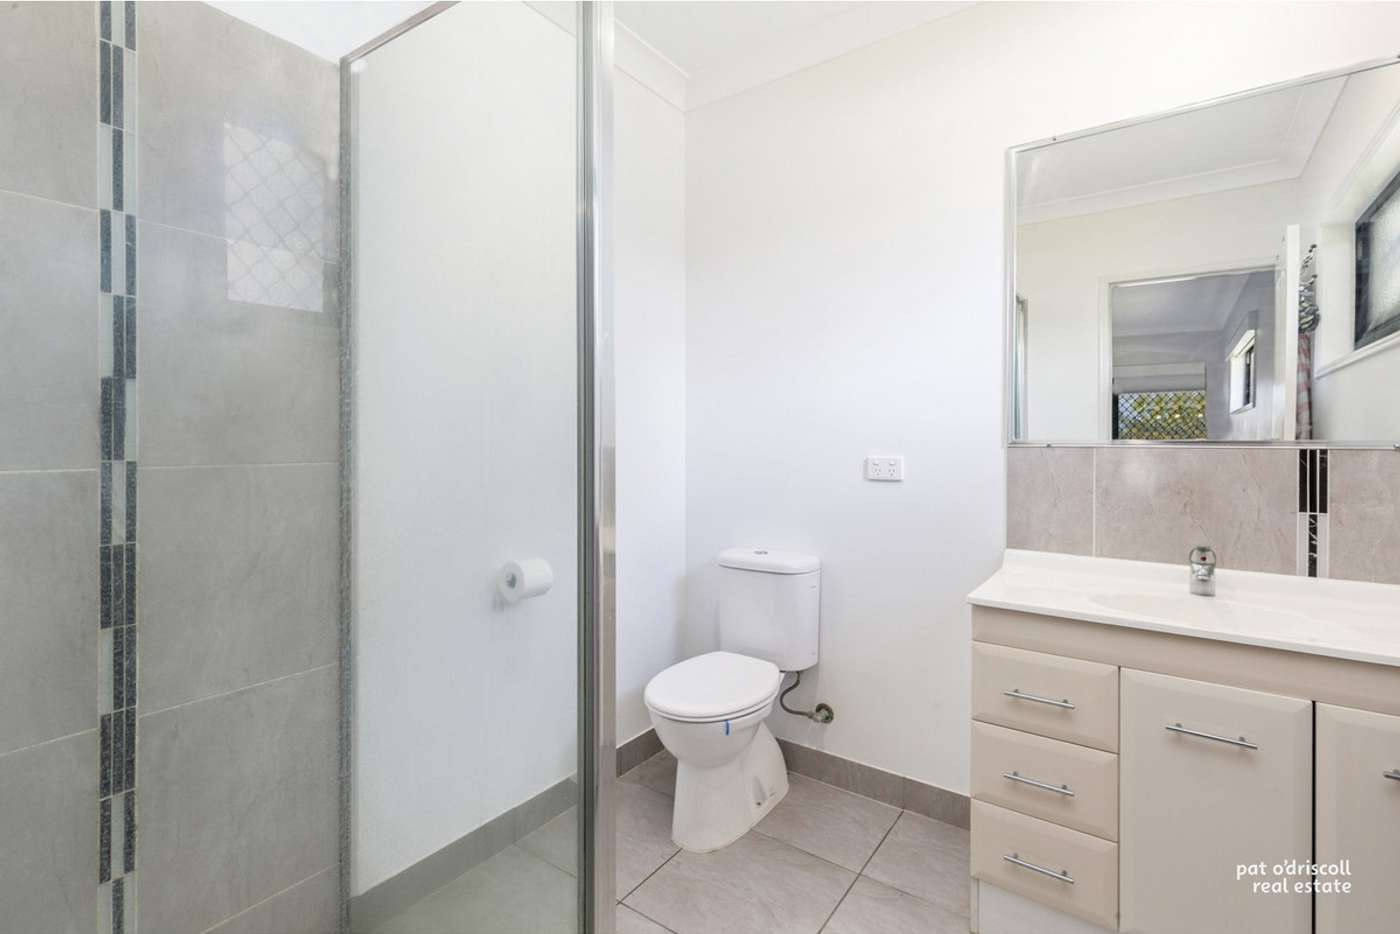 Fifth view of Homely house listing, 10 Mistletoe Avenue, Norman Gardens QLD 4701